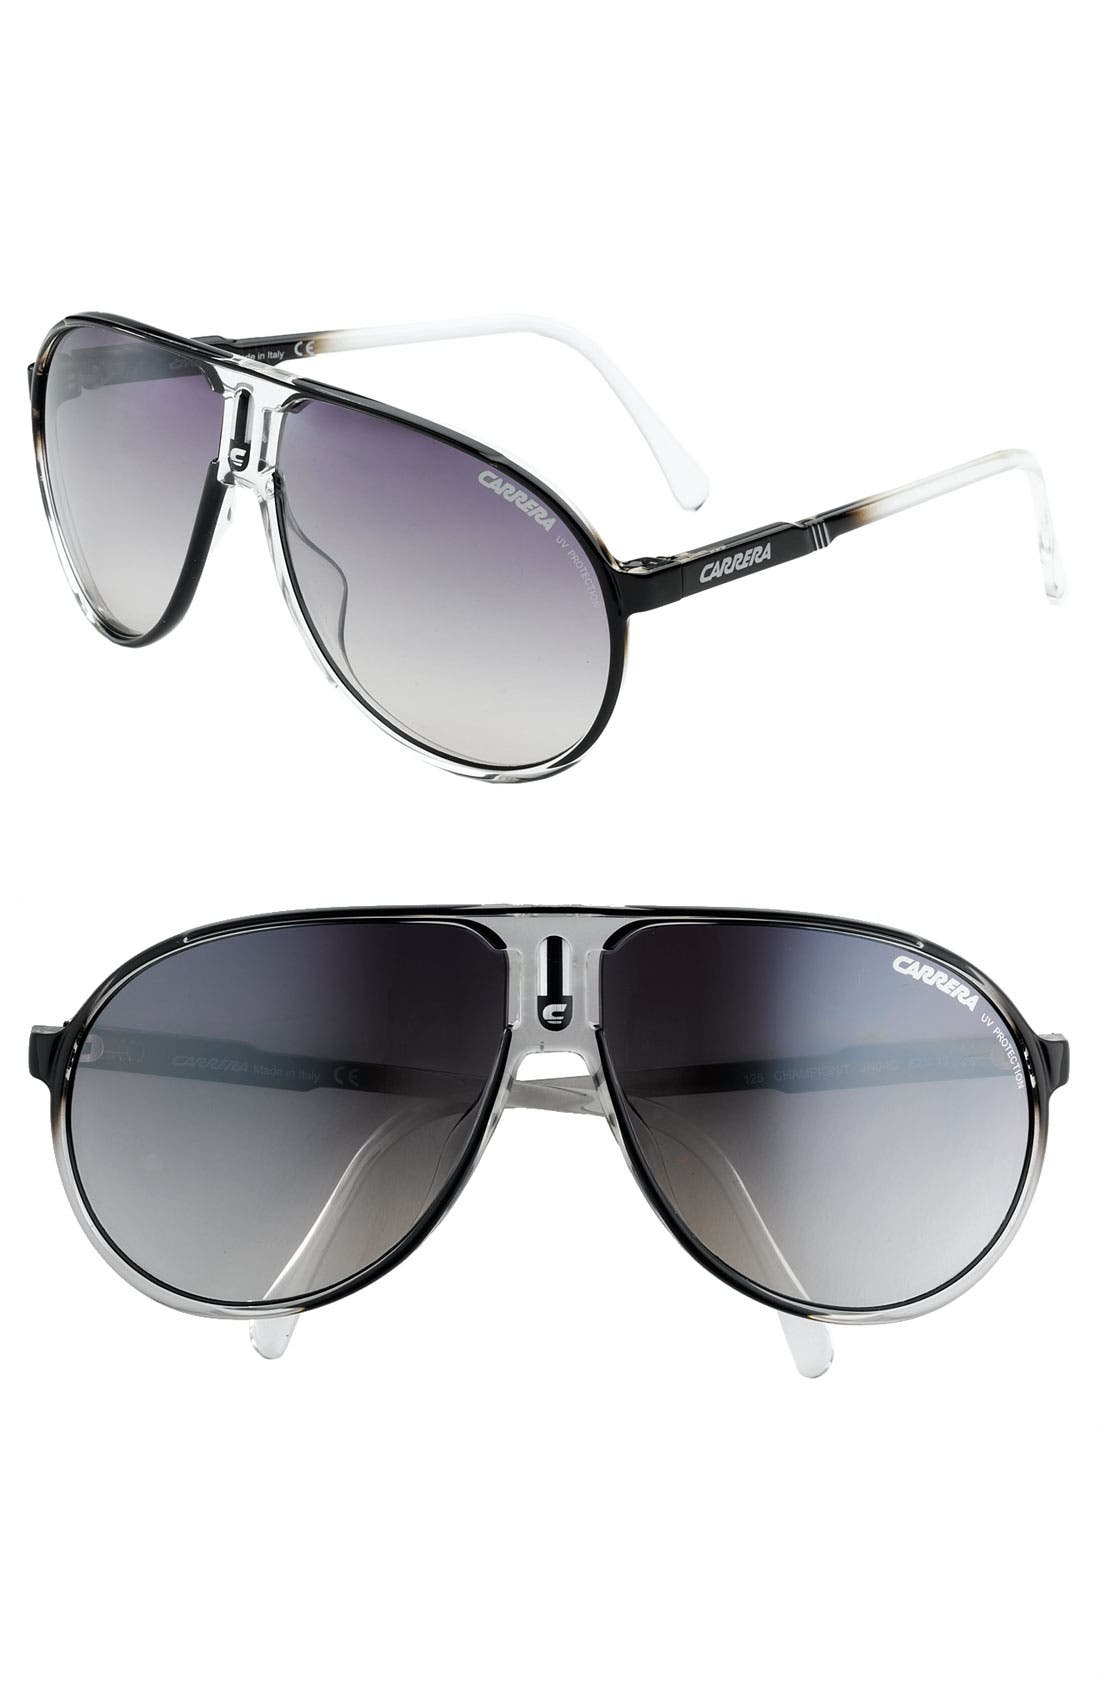 Main Image - Carrera Eyewear 'Champion' Aviator Sunglasses